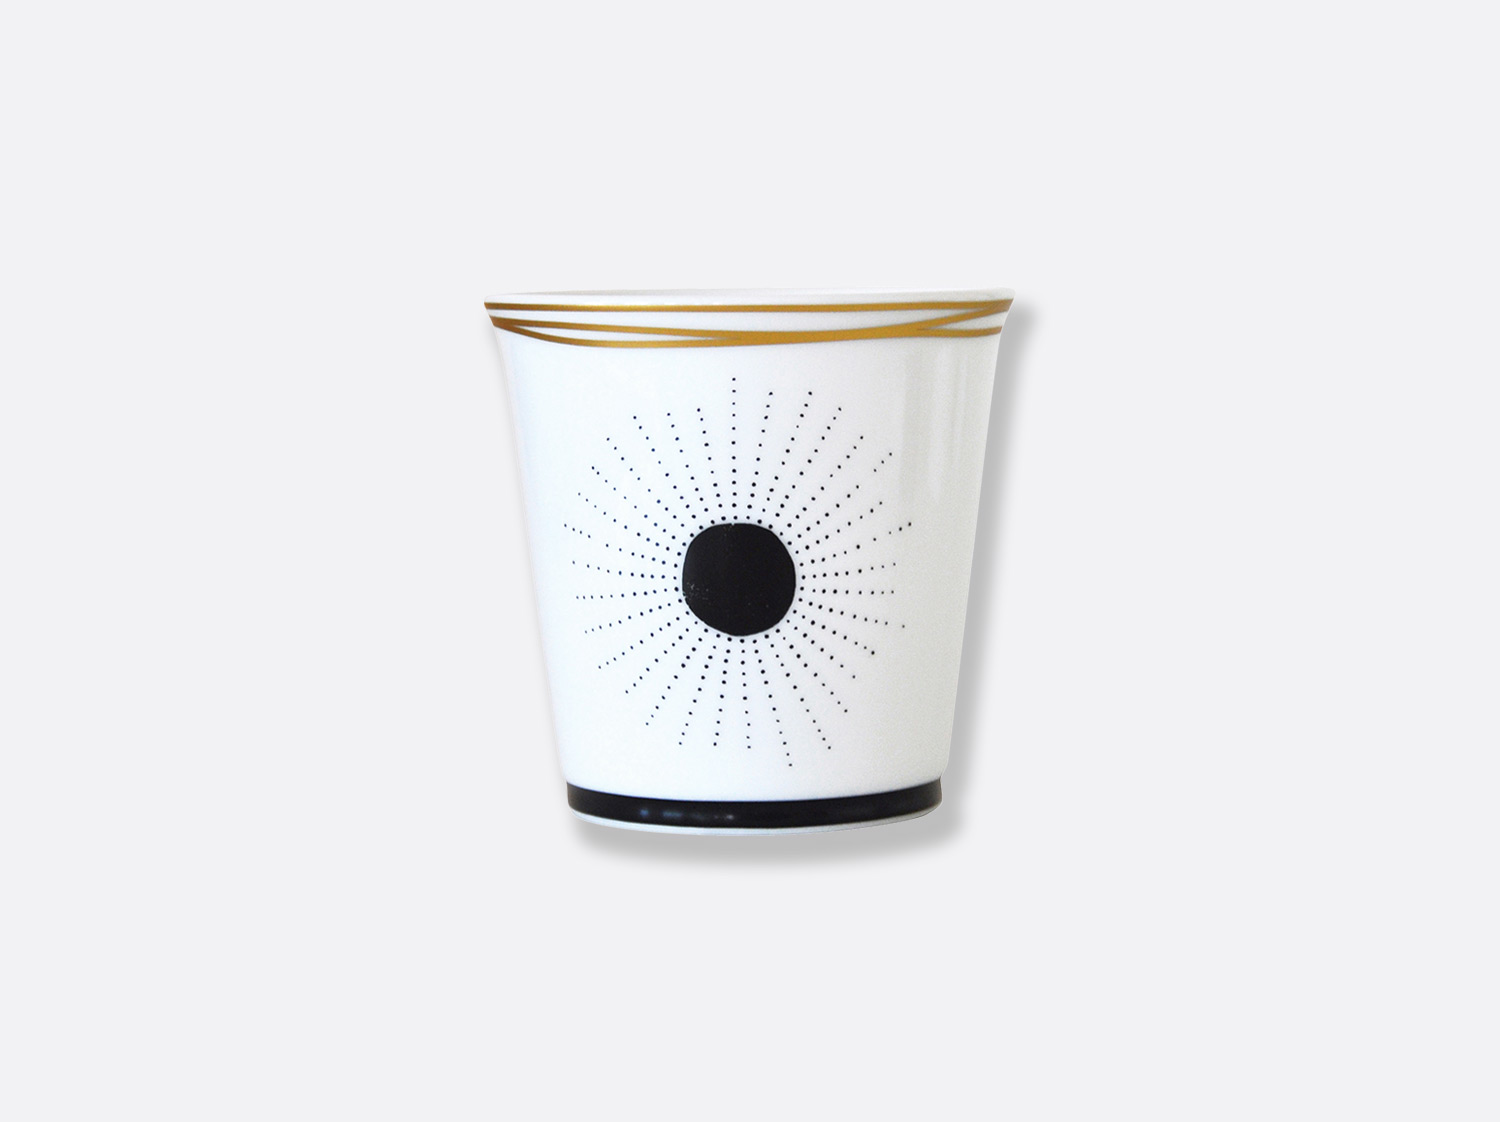 Pot 9 cm + bougie parfumée 200g en porcelaine de la collection Aboro Bernardaud